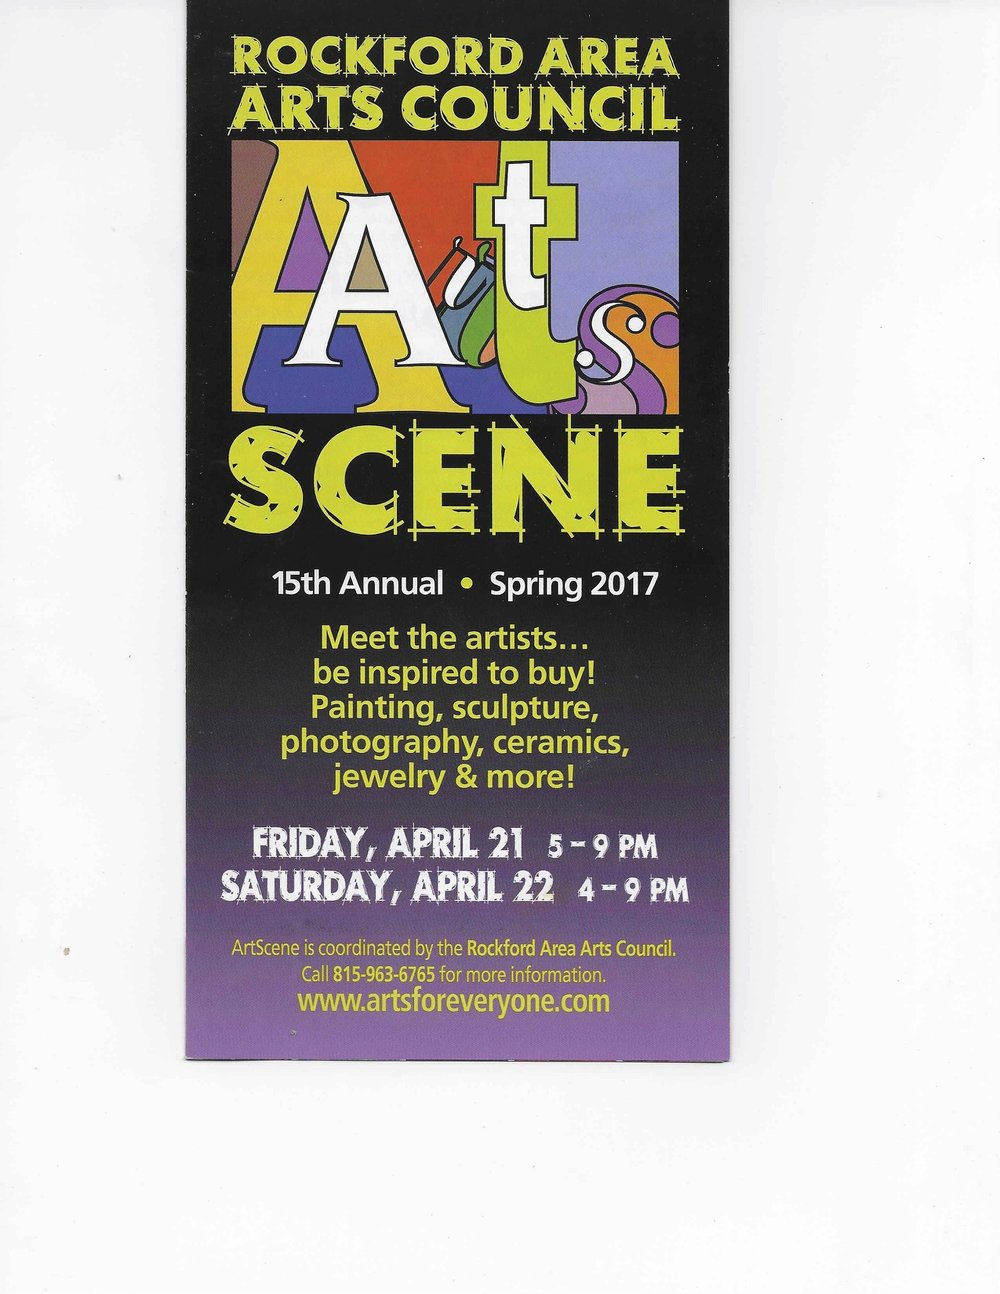 Rockford Area Arts Council Art Scene